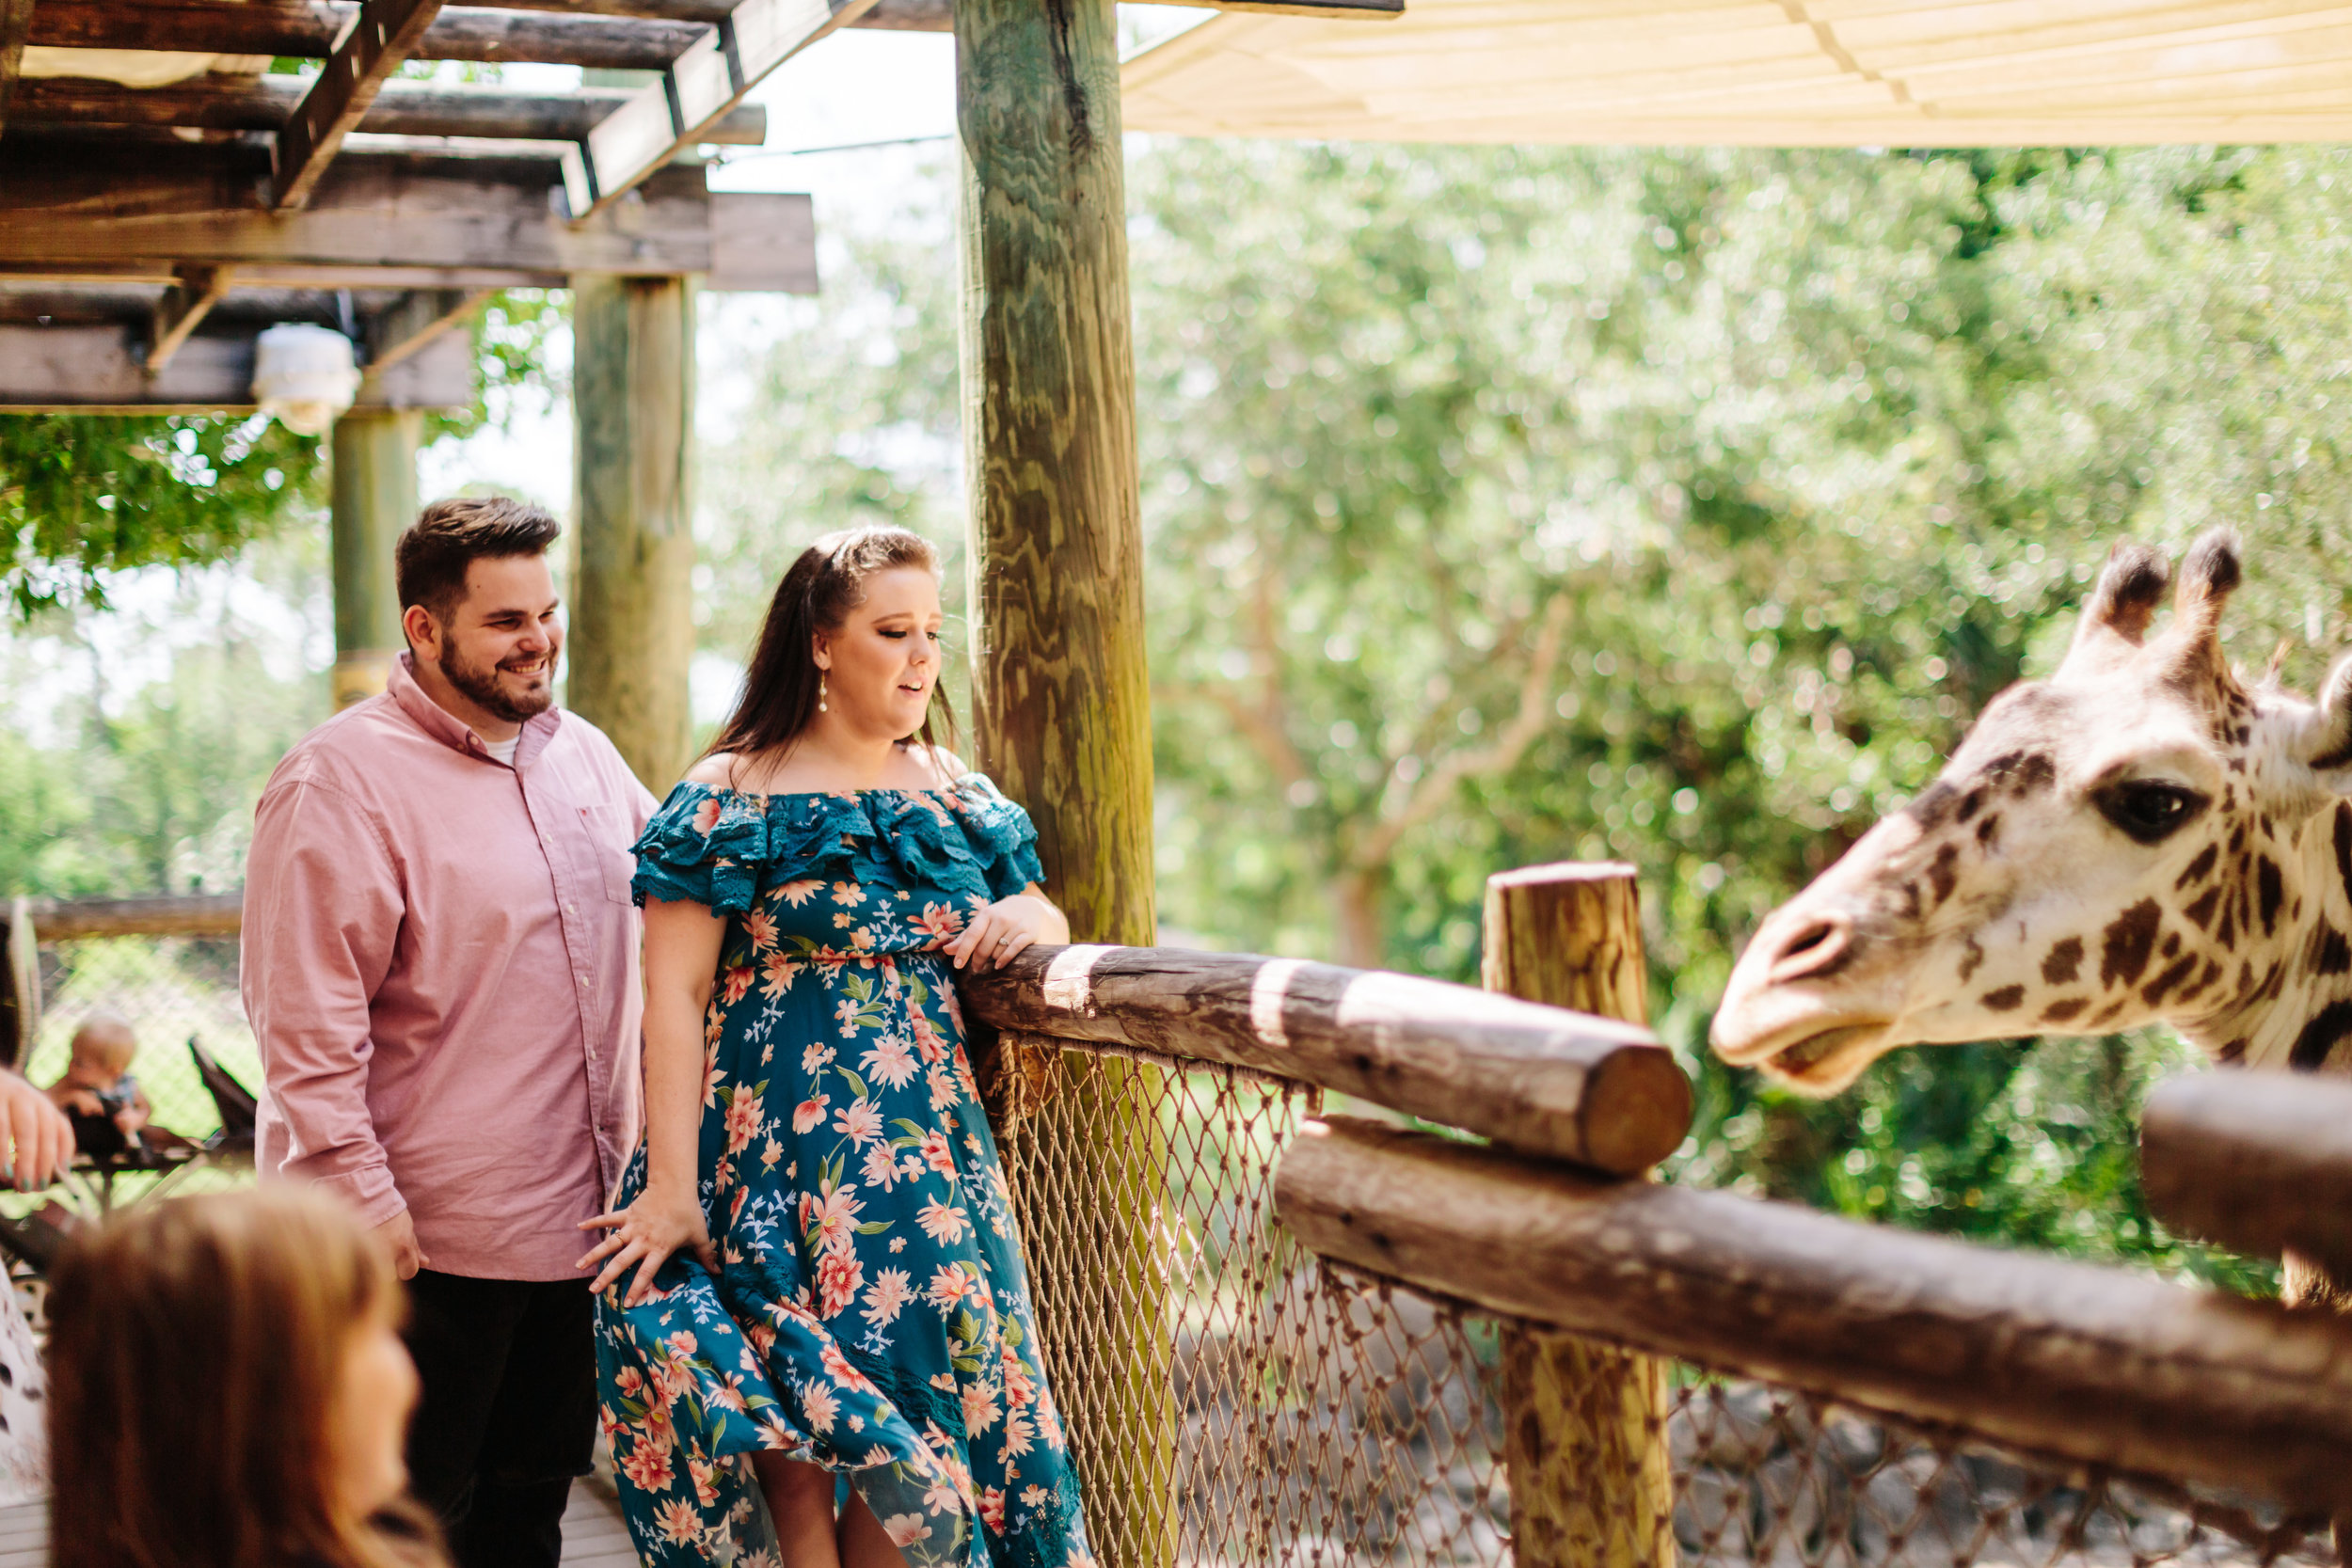 2018.05.01 Ashleigh and Nathan Brevard Zoo Engagement Session-157.jpg